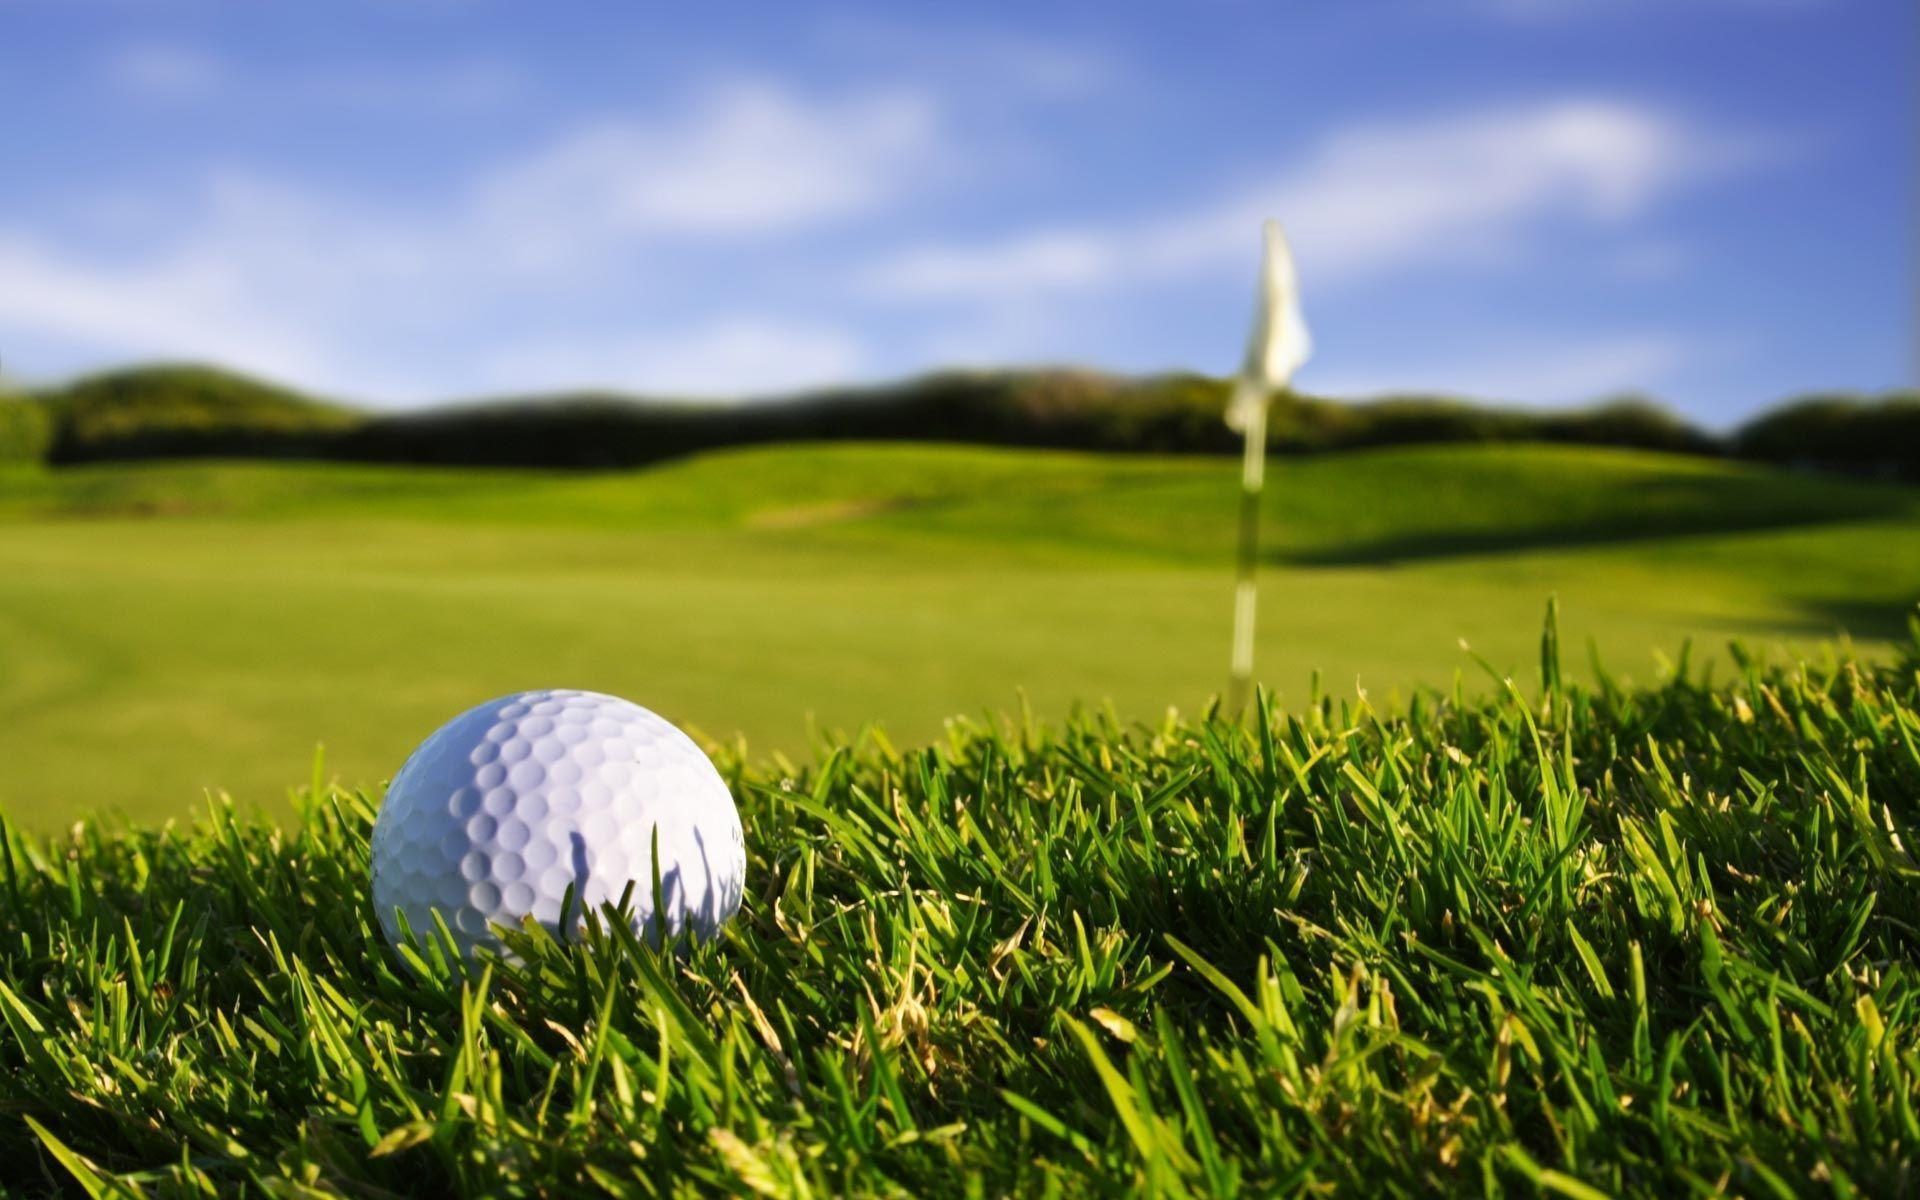 Golf desktop wallpapers in best quality - PGA tours and Golf fields